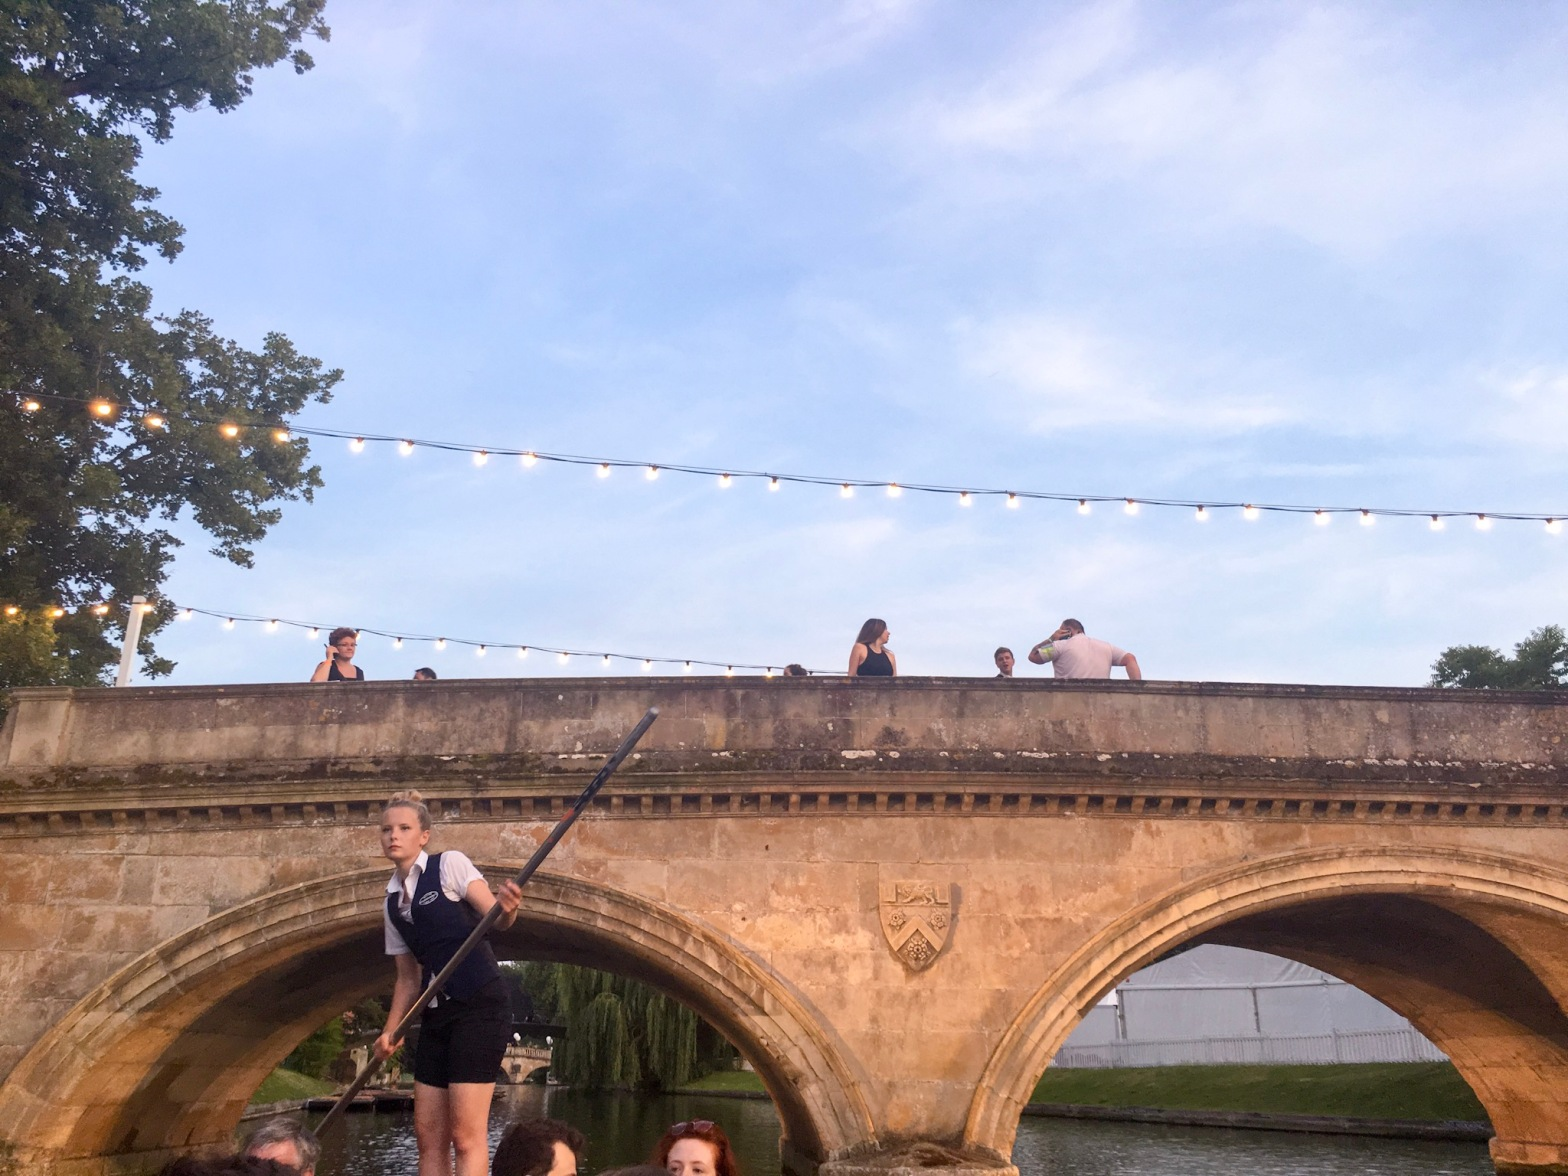 Punting and fairy lights over a beautiful bridge, Cambridge